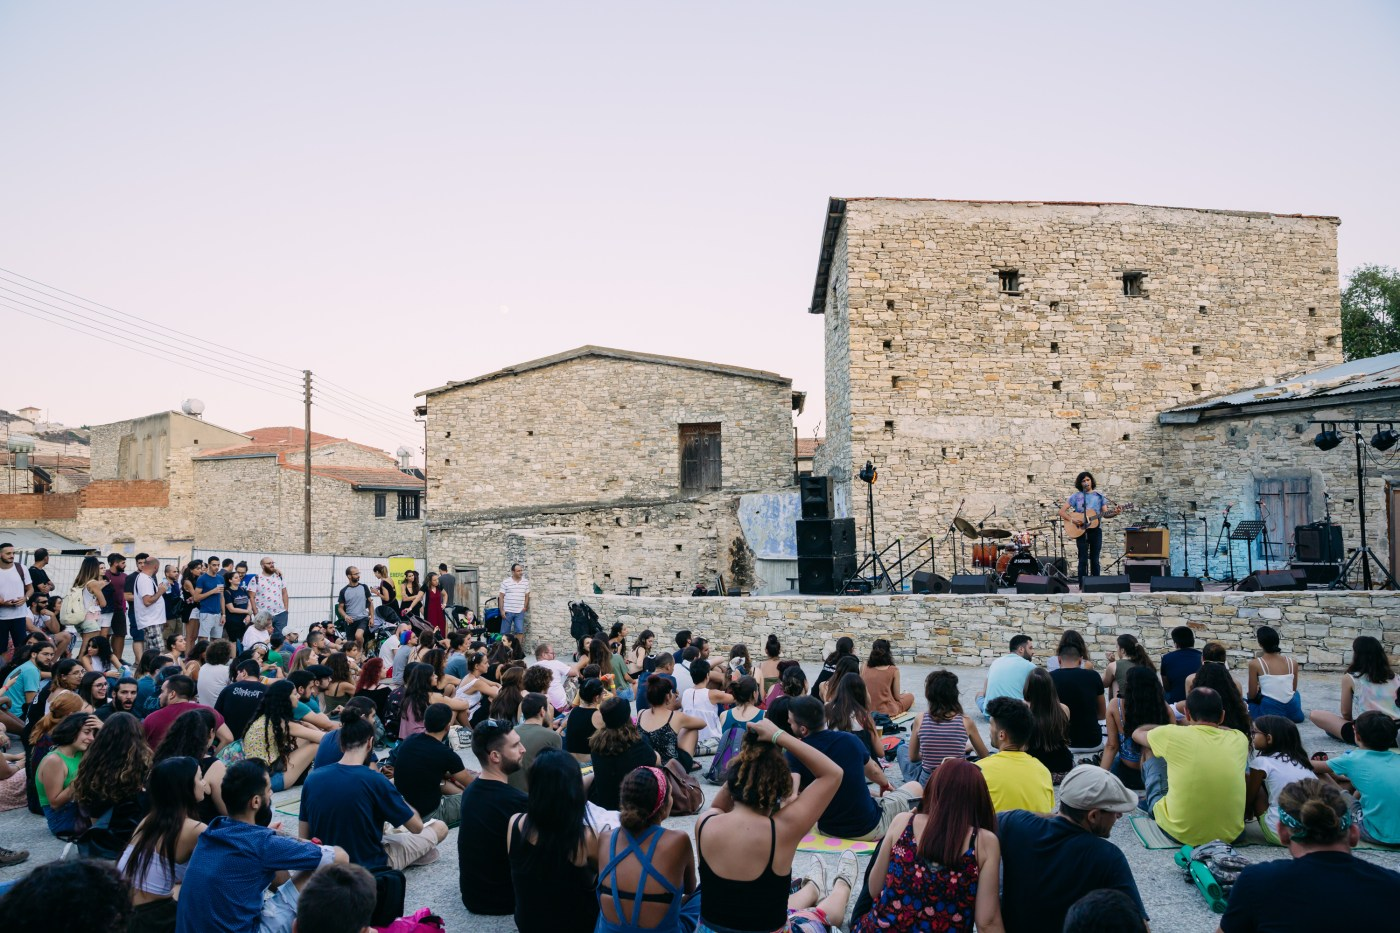 A crowd of people sits on the floor in front of the stage next to the small houses of light brick. Musicians perform on stage